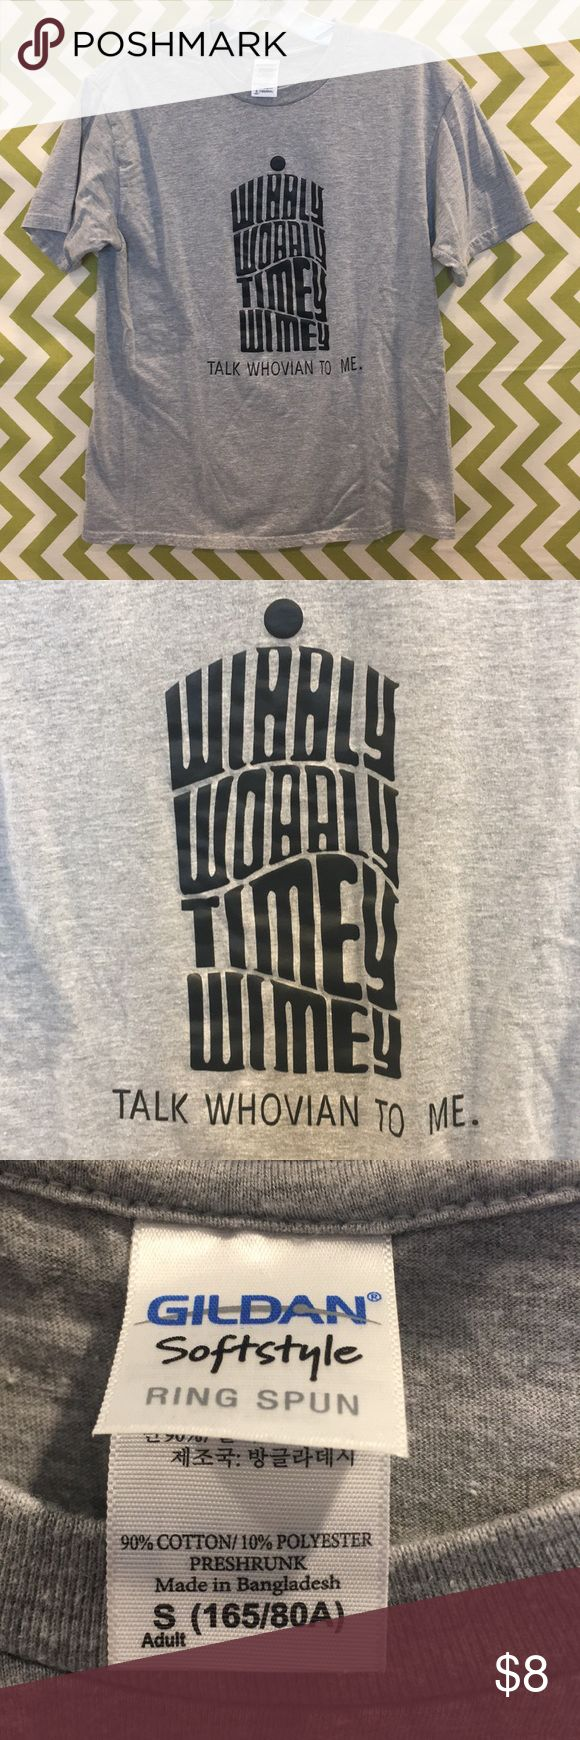 Doctor Who T-Shirt Doctor Who T-Shirt Wibbly wobbly timey wimey Size small Excellent condition Doctor Who Tops Tees - Short Sleeve